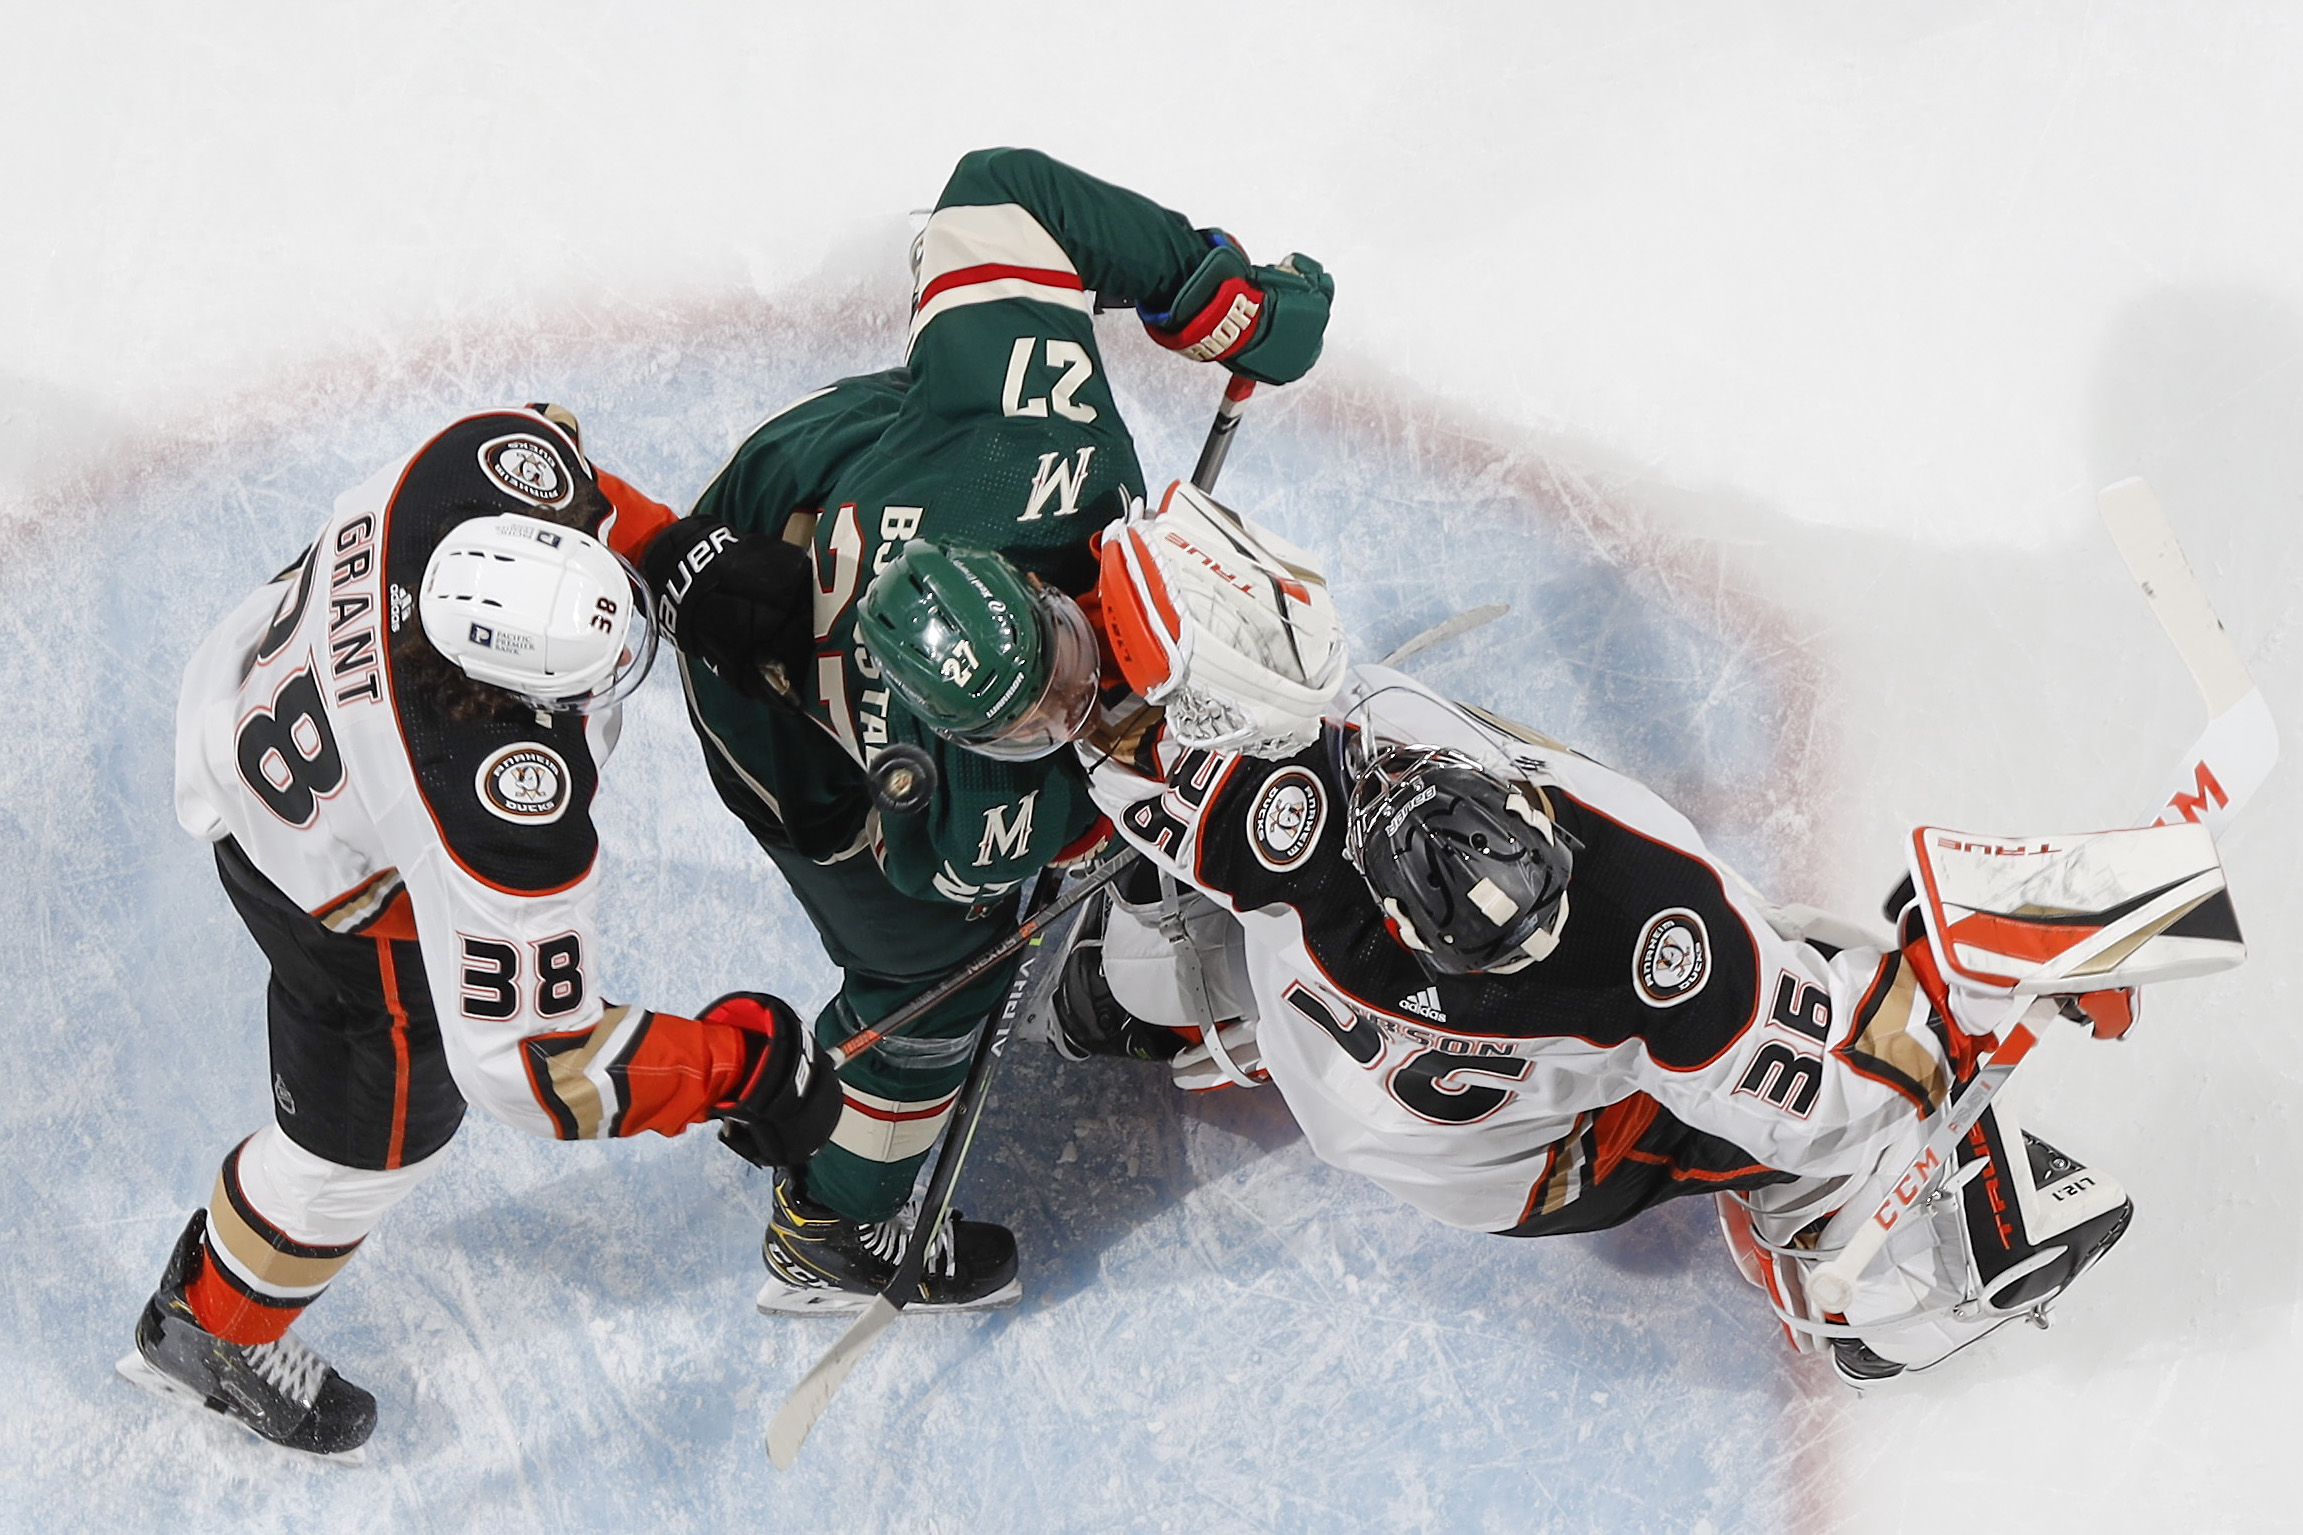 Derek Grant #38 and John Gibson #36 of the Anaheim Ducks defend against Nick Bjugstad #27 of the Minnesota Wild during the game at the Xcel Energy Center on May 7, 2021 in Saint Paul, Minnesota.